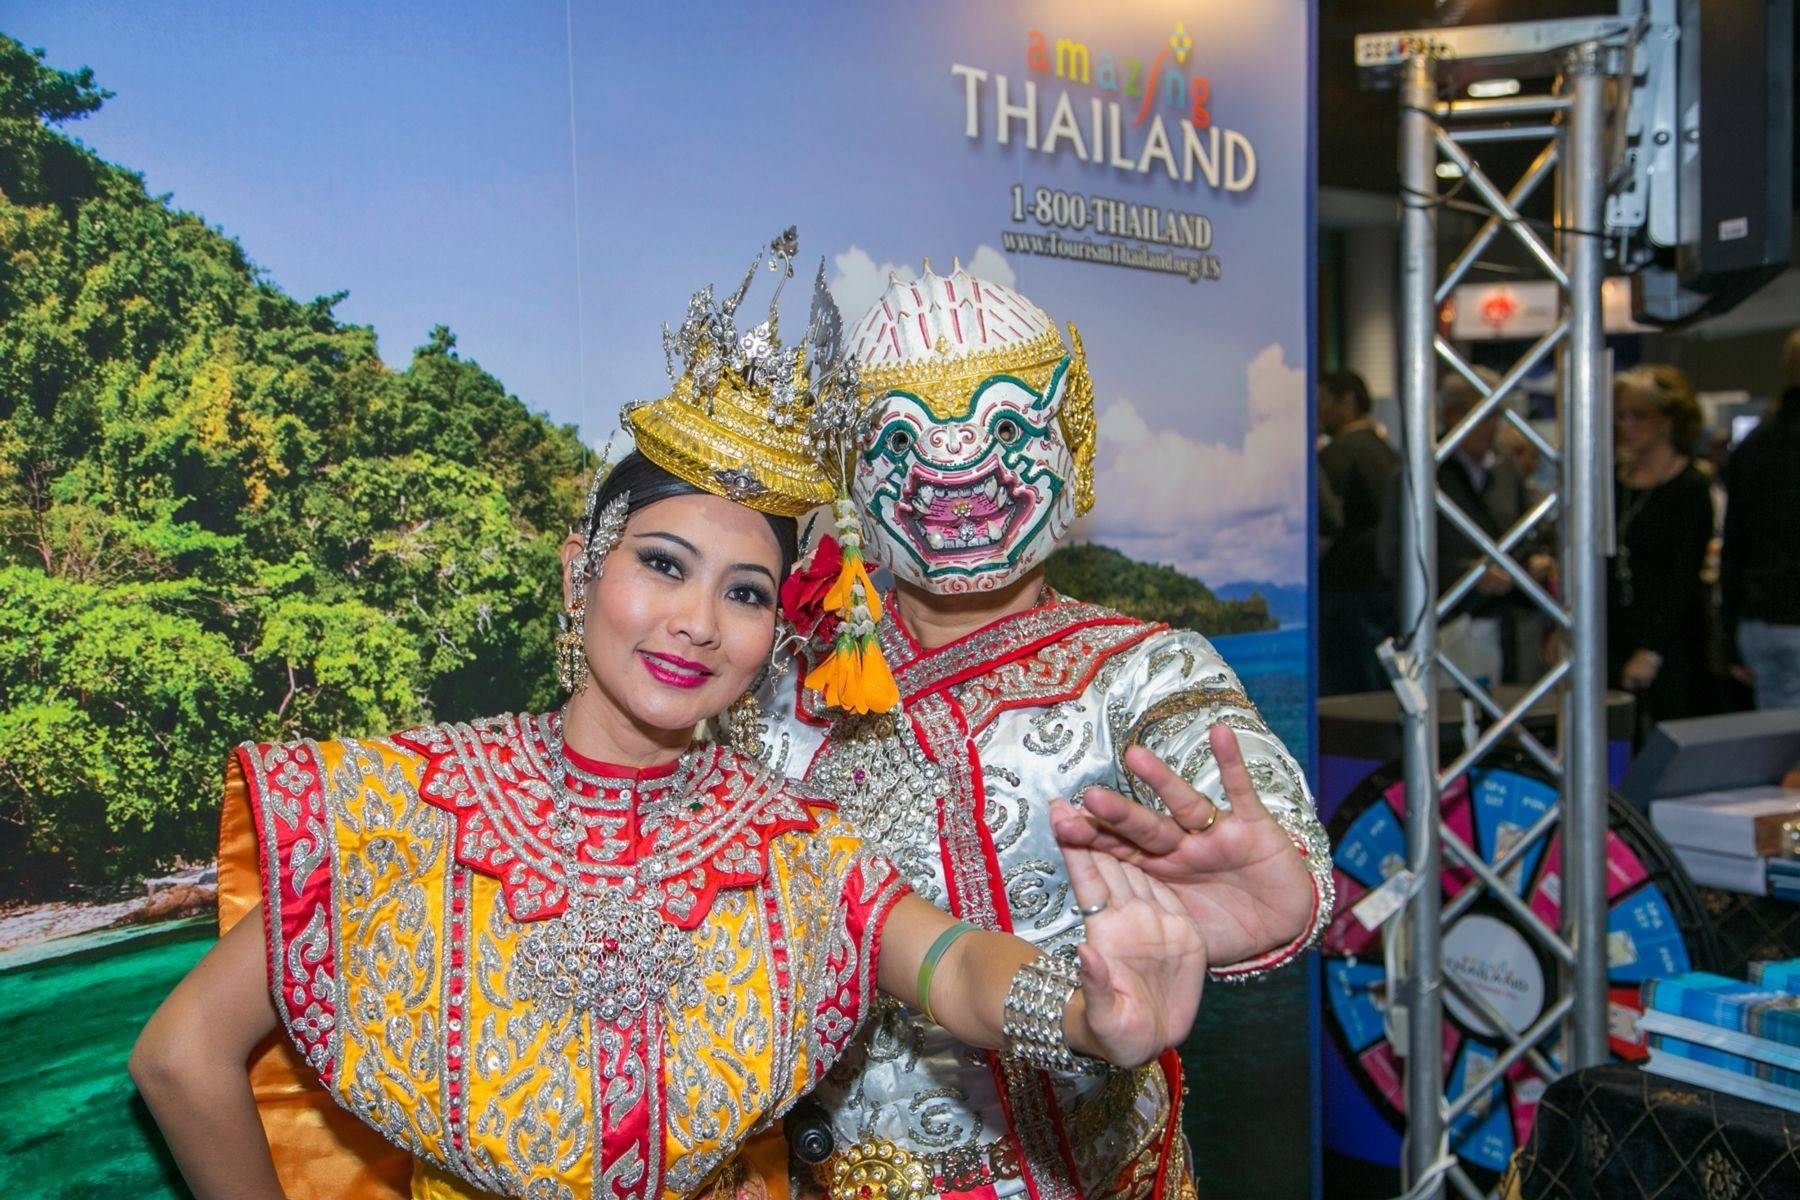 Representatives from Thailand at the show.